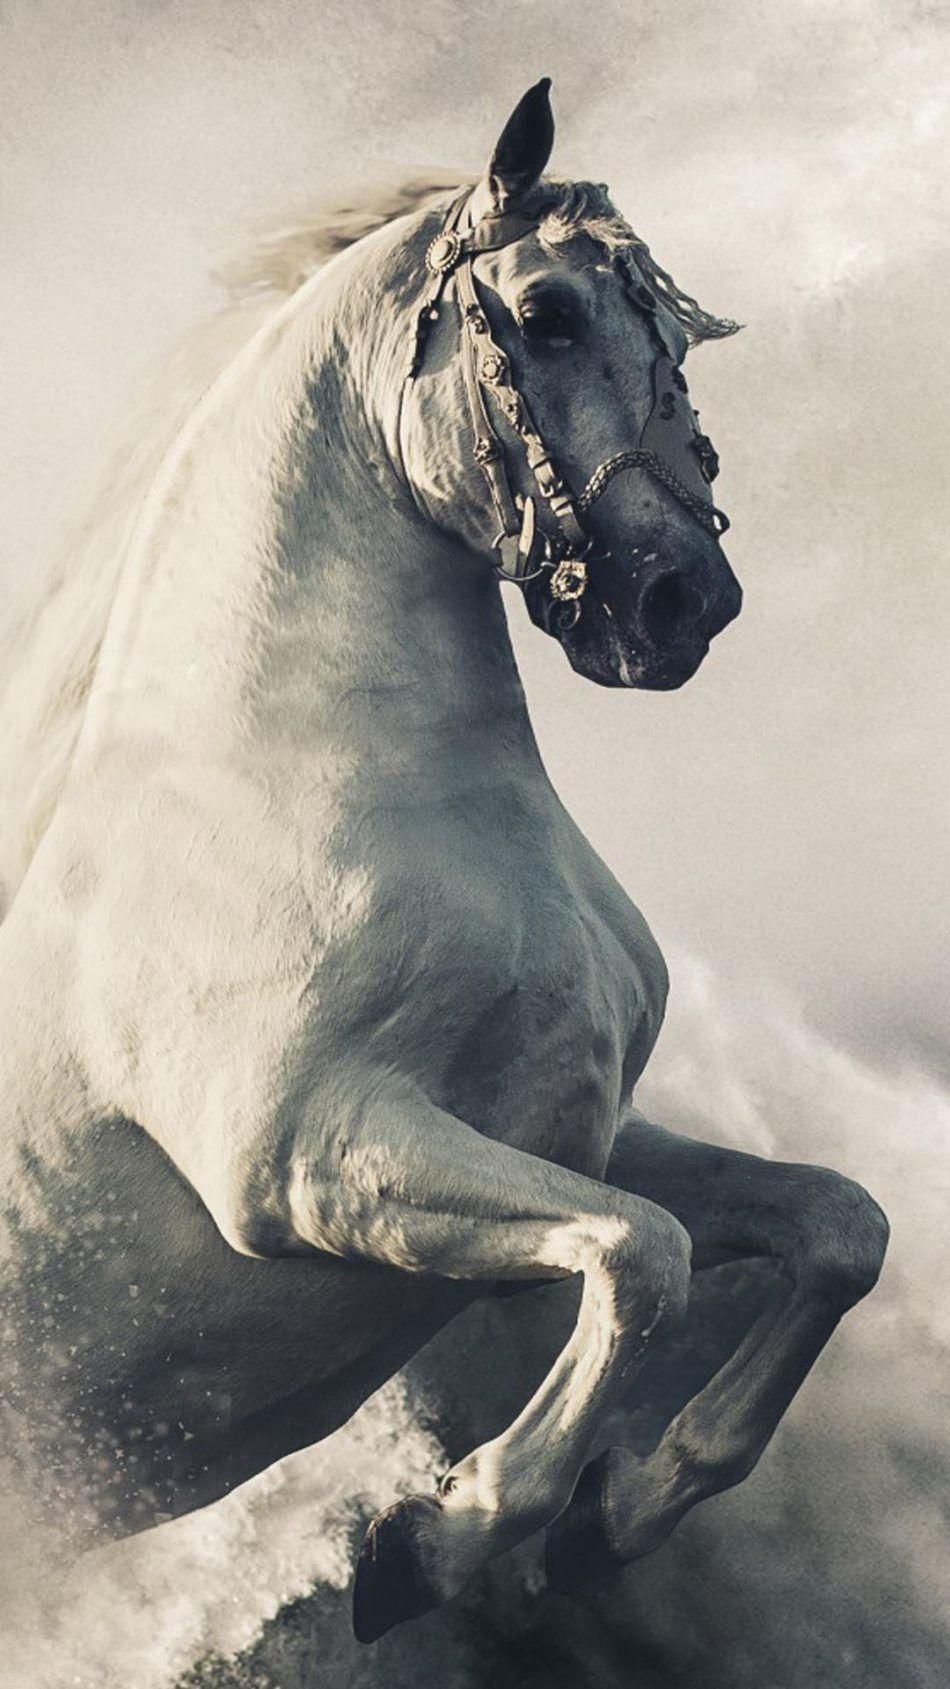 Pegasus White Horse 4k Ultra Hd Mobile Wallpaper Horse Wallpaper Horses Horses In Snow